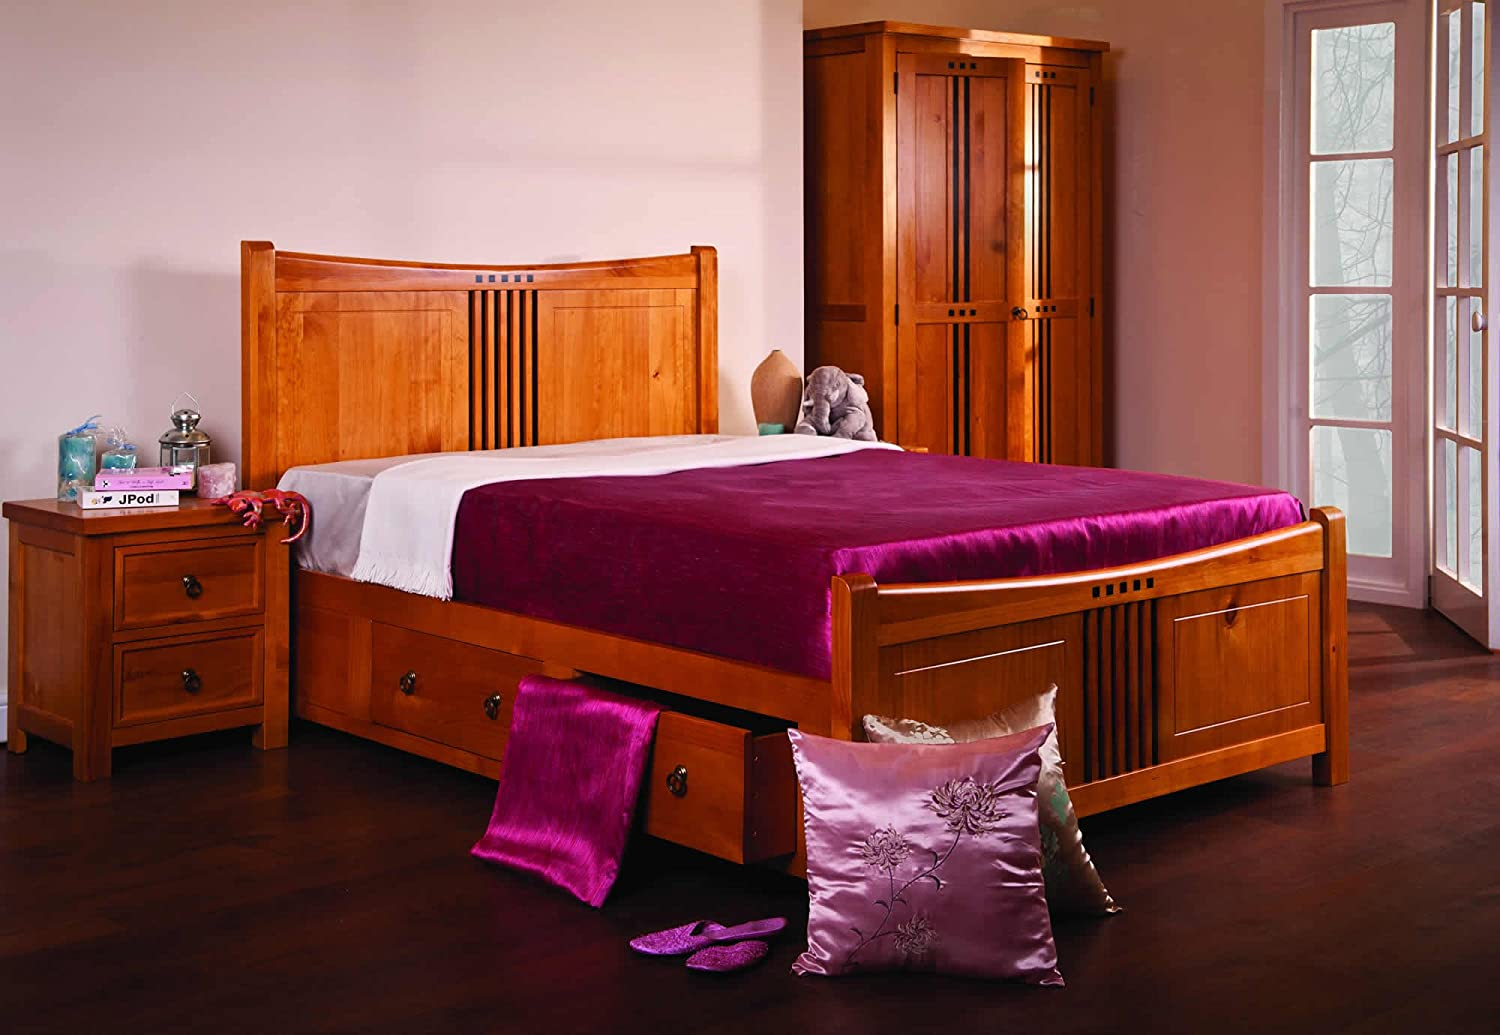 Sweet Dreams Curlew Wild Cherry Wooden Bed 5ft King Size 4 Drawers:  Amazon: Kitchen & Home